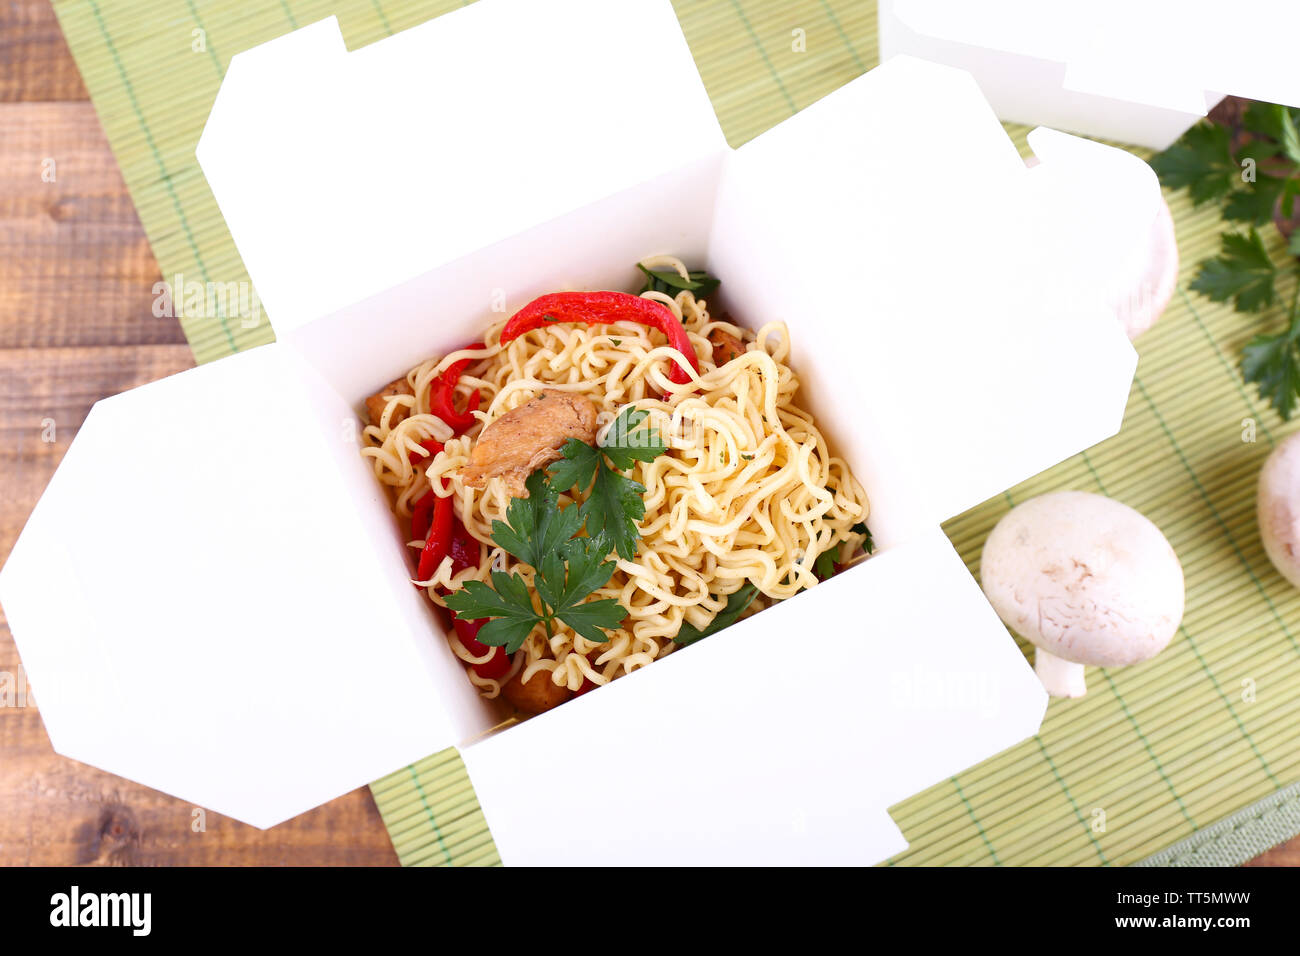 Chinese noodles in takeaway box on mat background - Stock Image